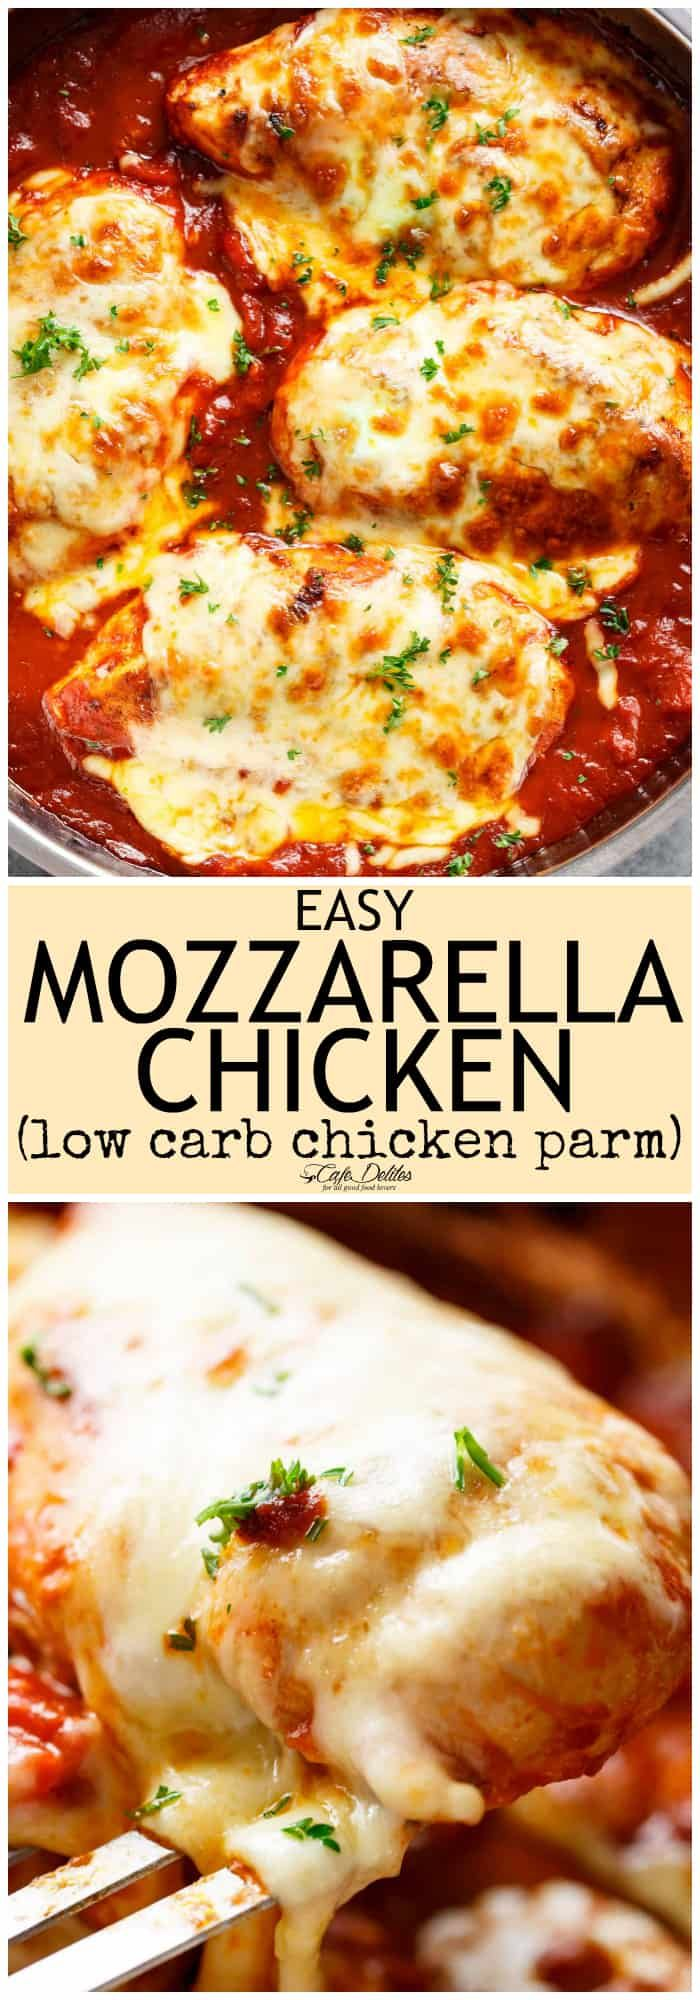 Easy Mozzarella Chicken is a low carb dream! Seasoned chicken simmered in a homemade tomato sauce, topped with melted mozzarella cheese! A 20-minute Low Carb Chicken Parmesan WITH NO BREADING! You don't even MISS a crispy crumb on this chicken. It is SO good!